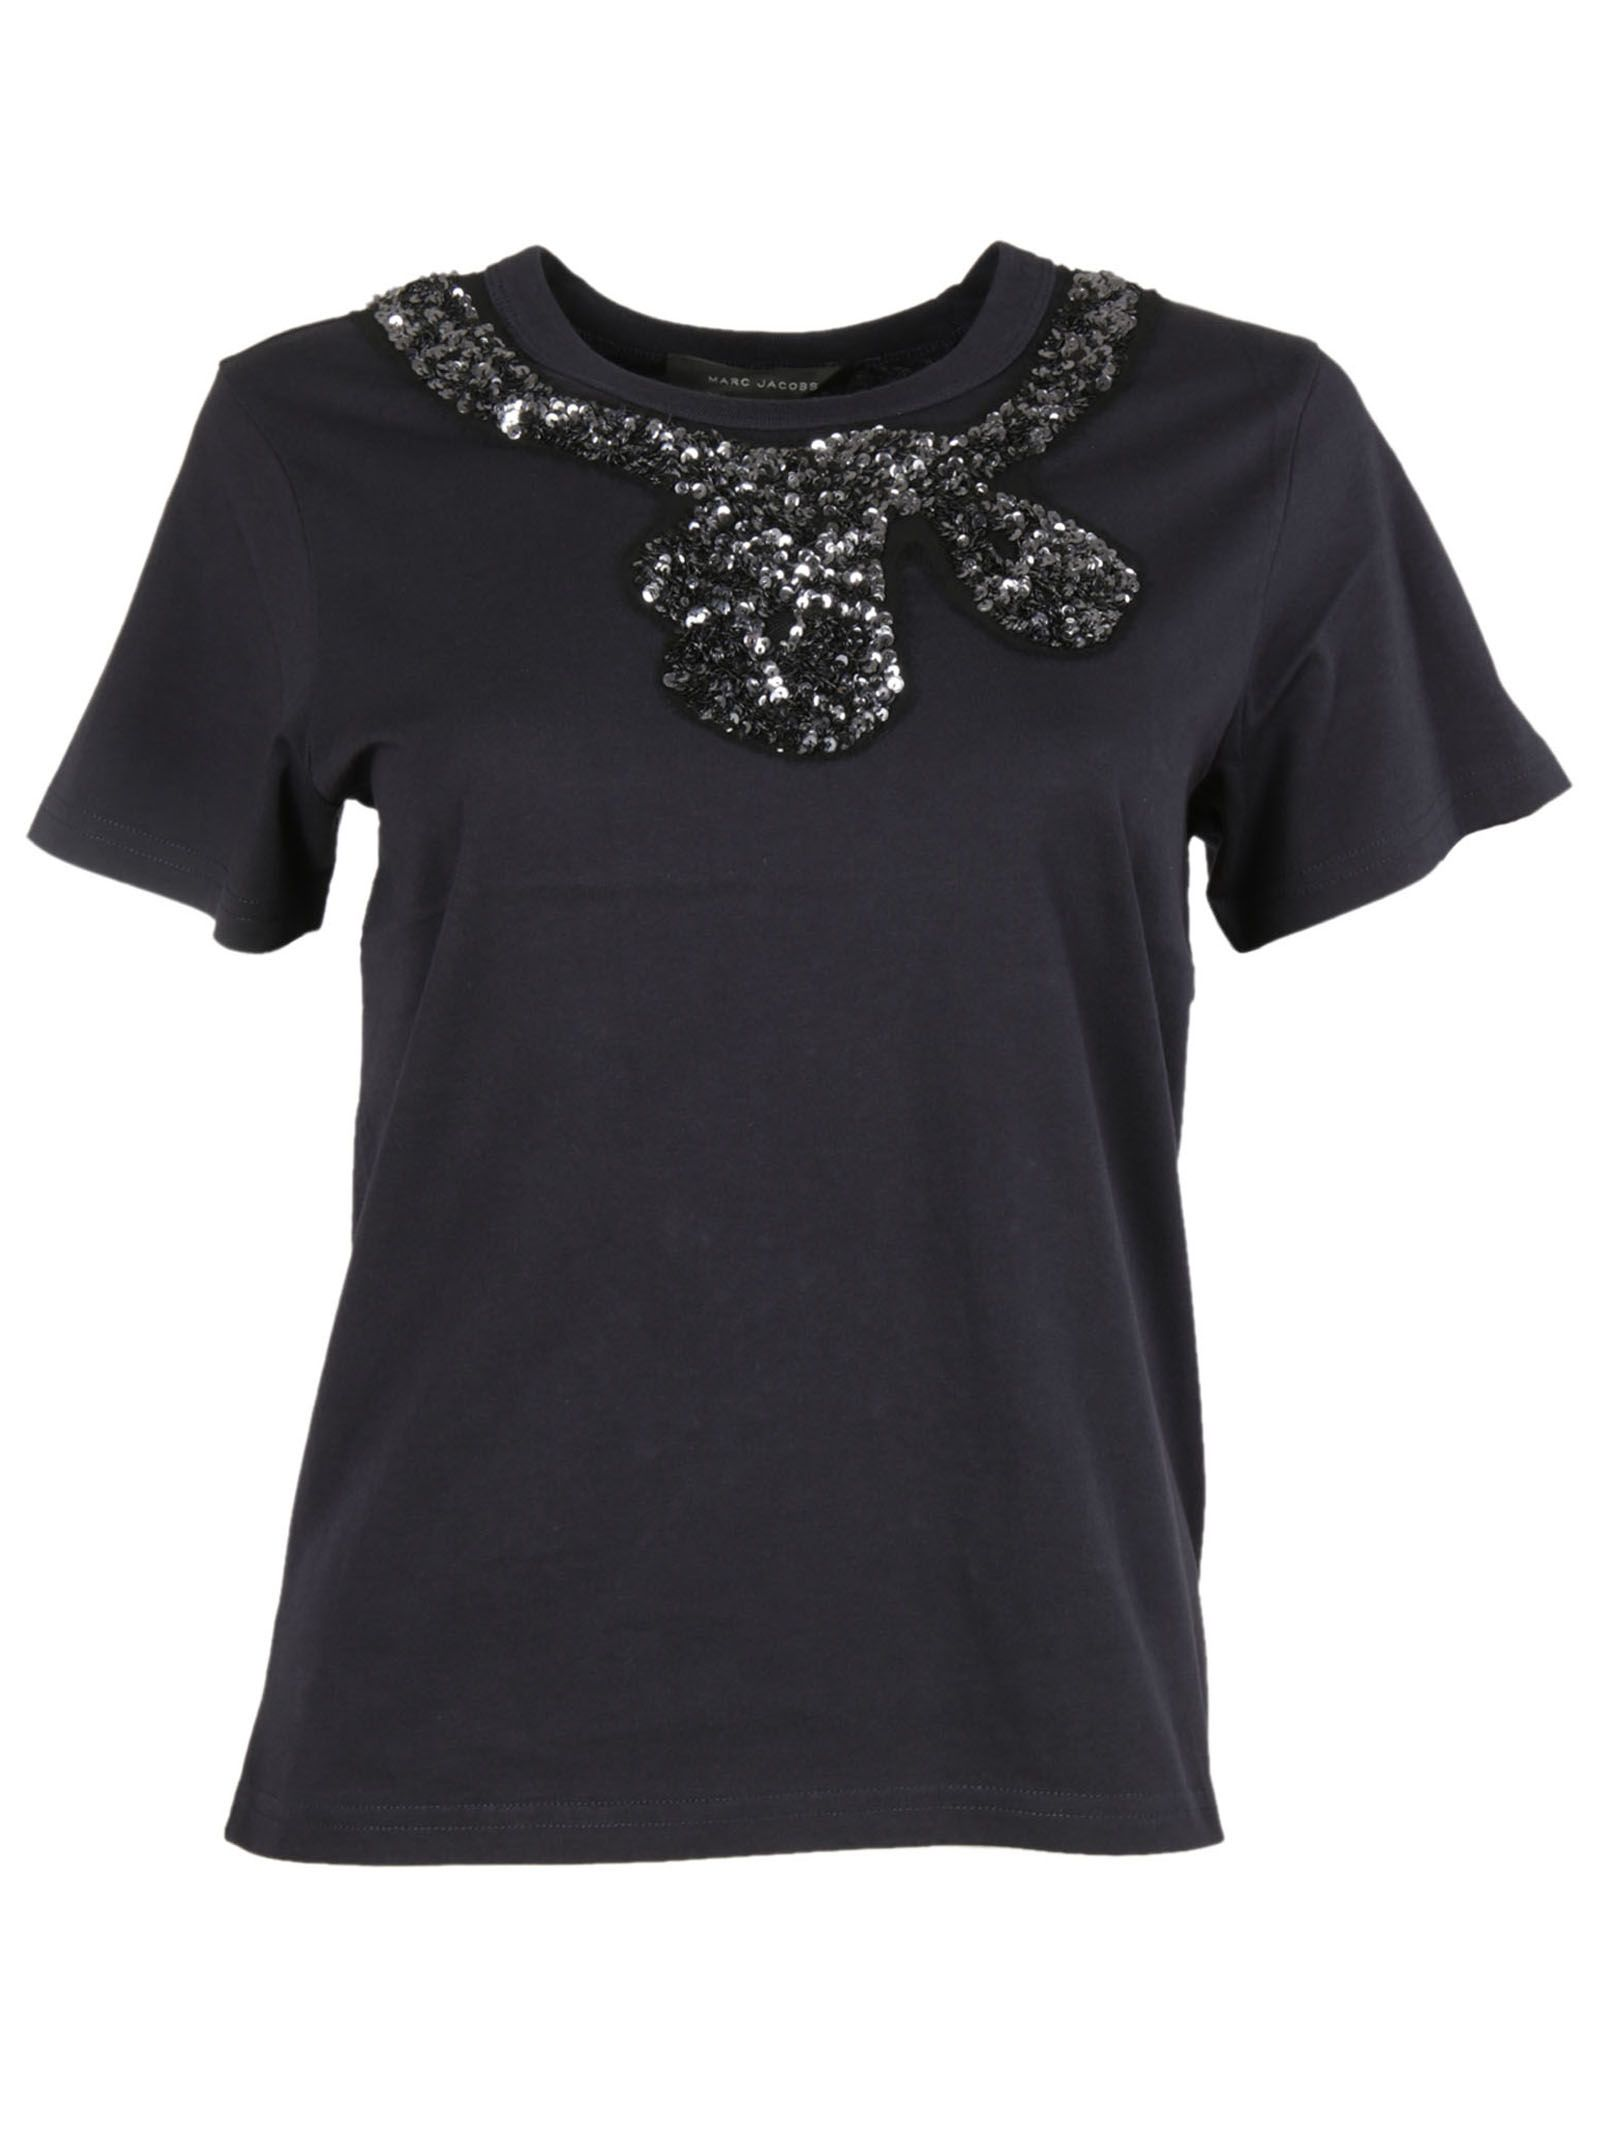 marc jacobs female 236621 navy sequins detail tshirt